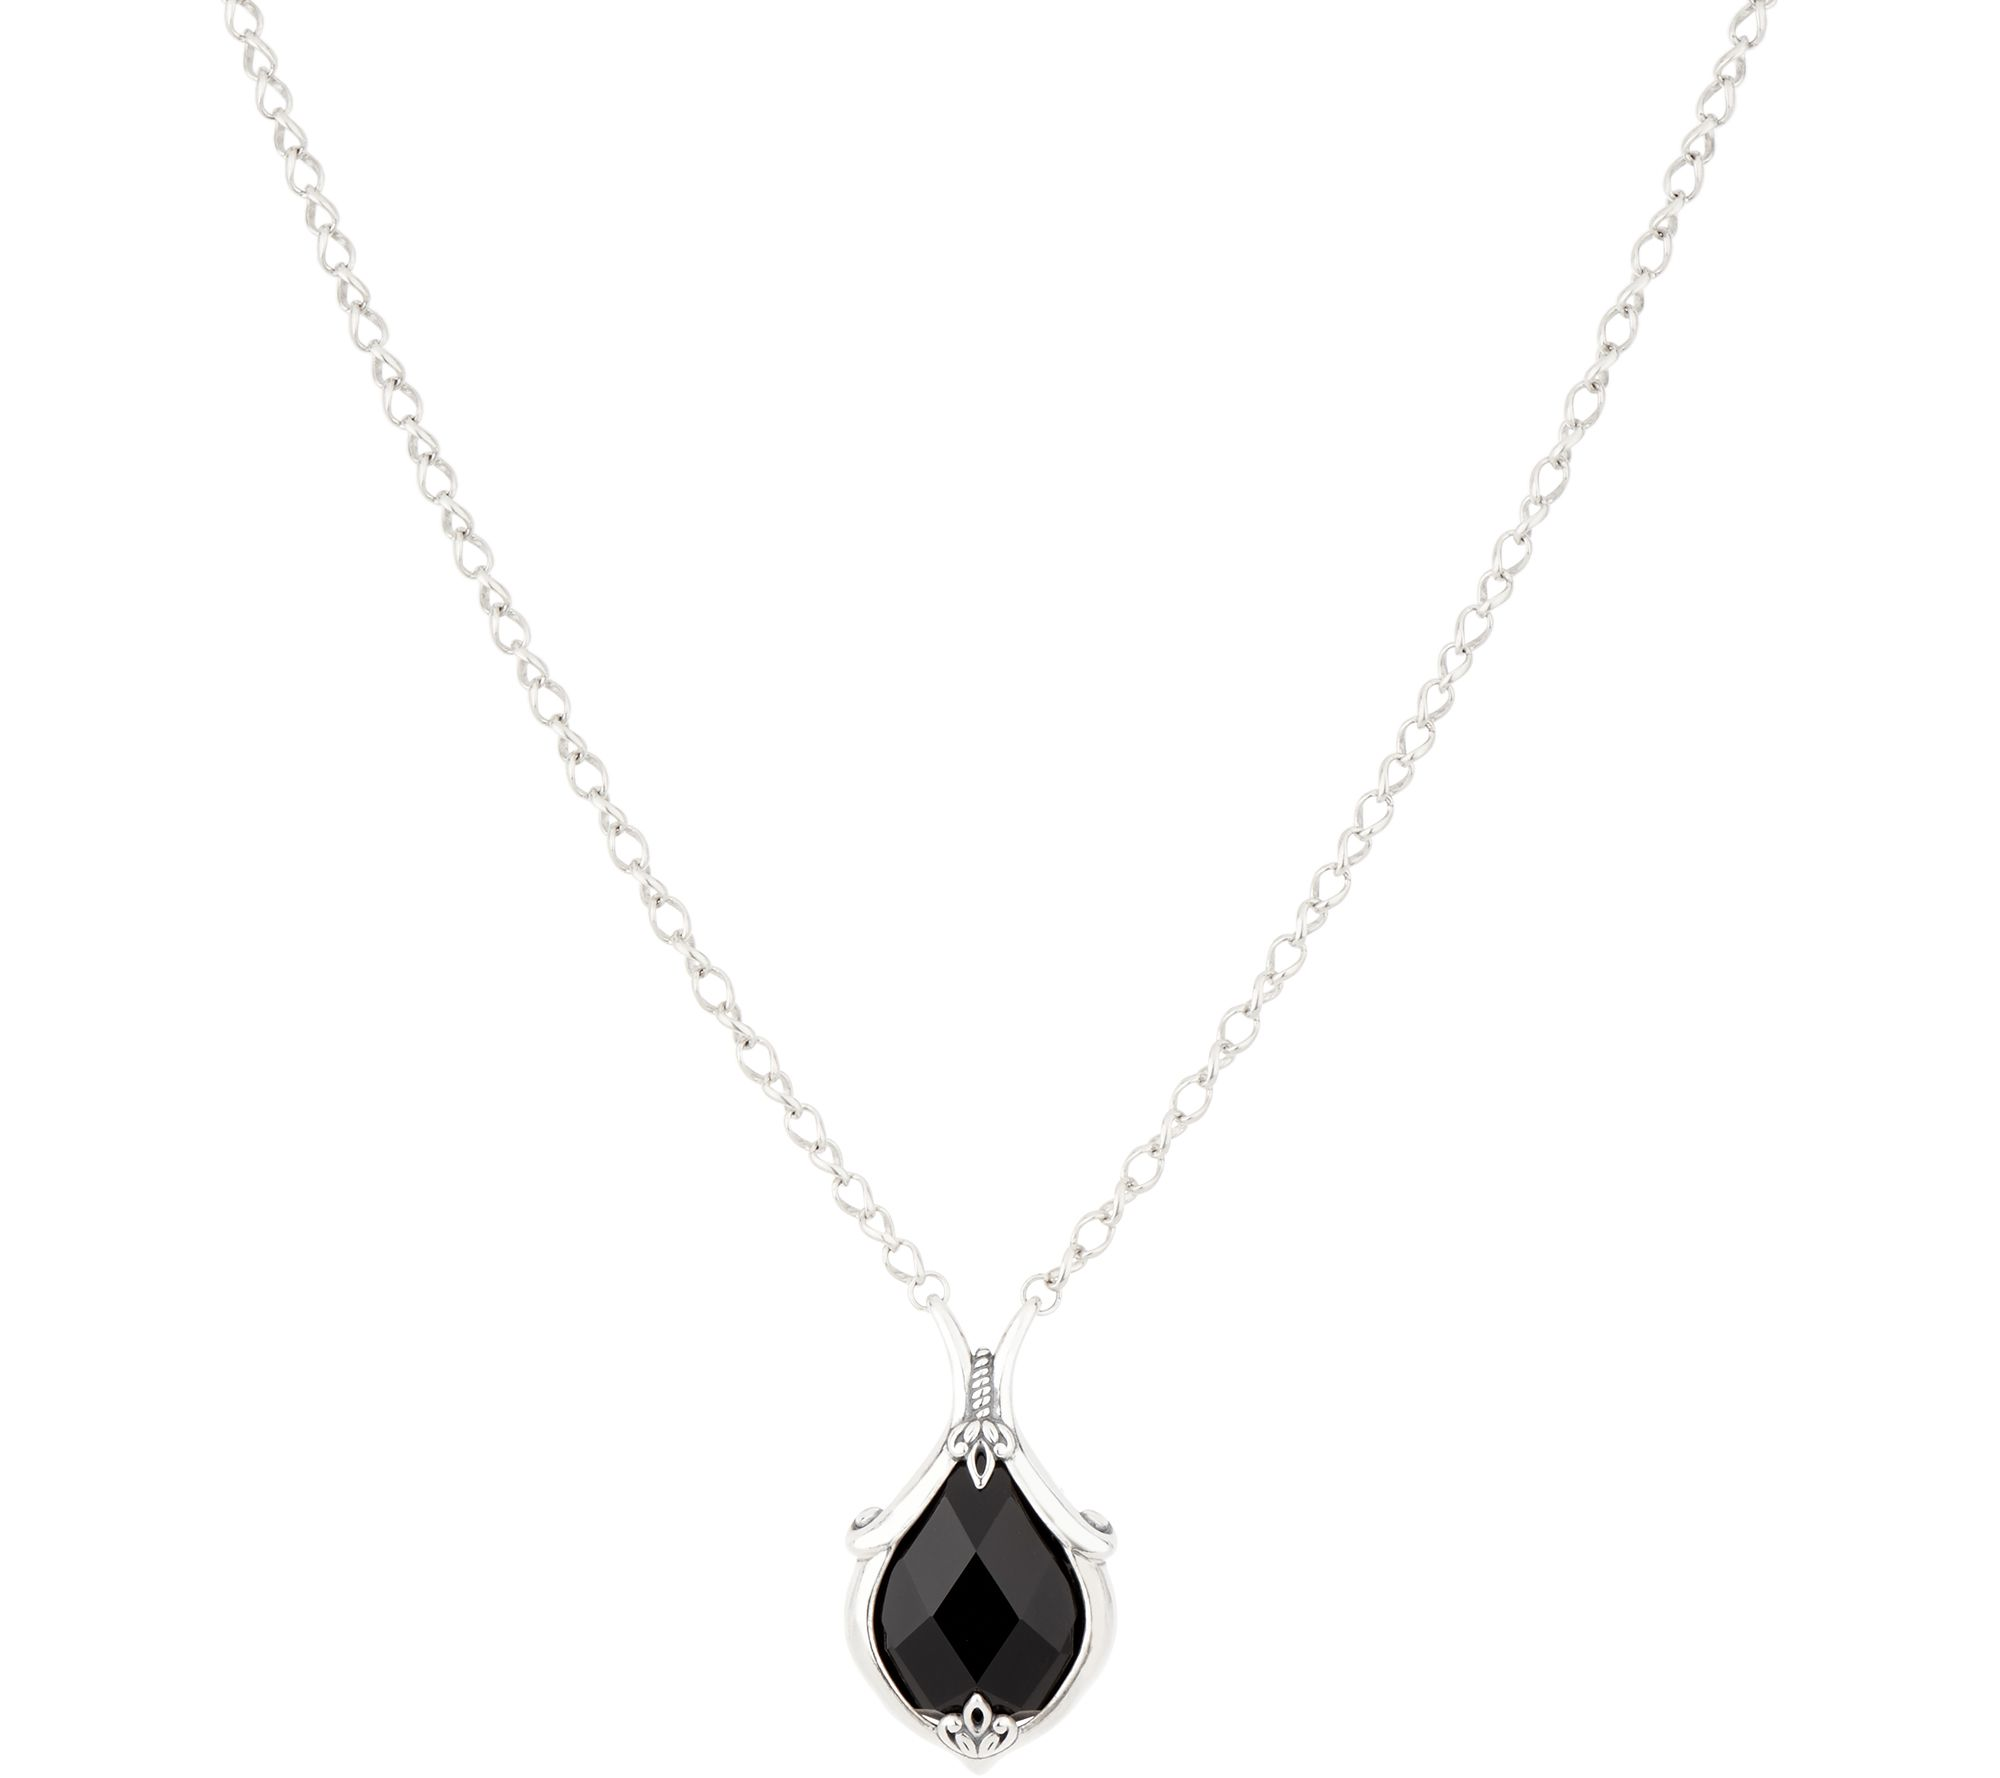 Carolyn Pollack Sterling Silver Faceted Onyx Necklace - J352607